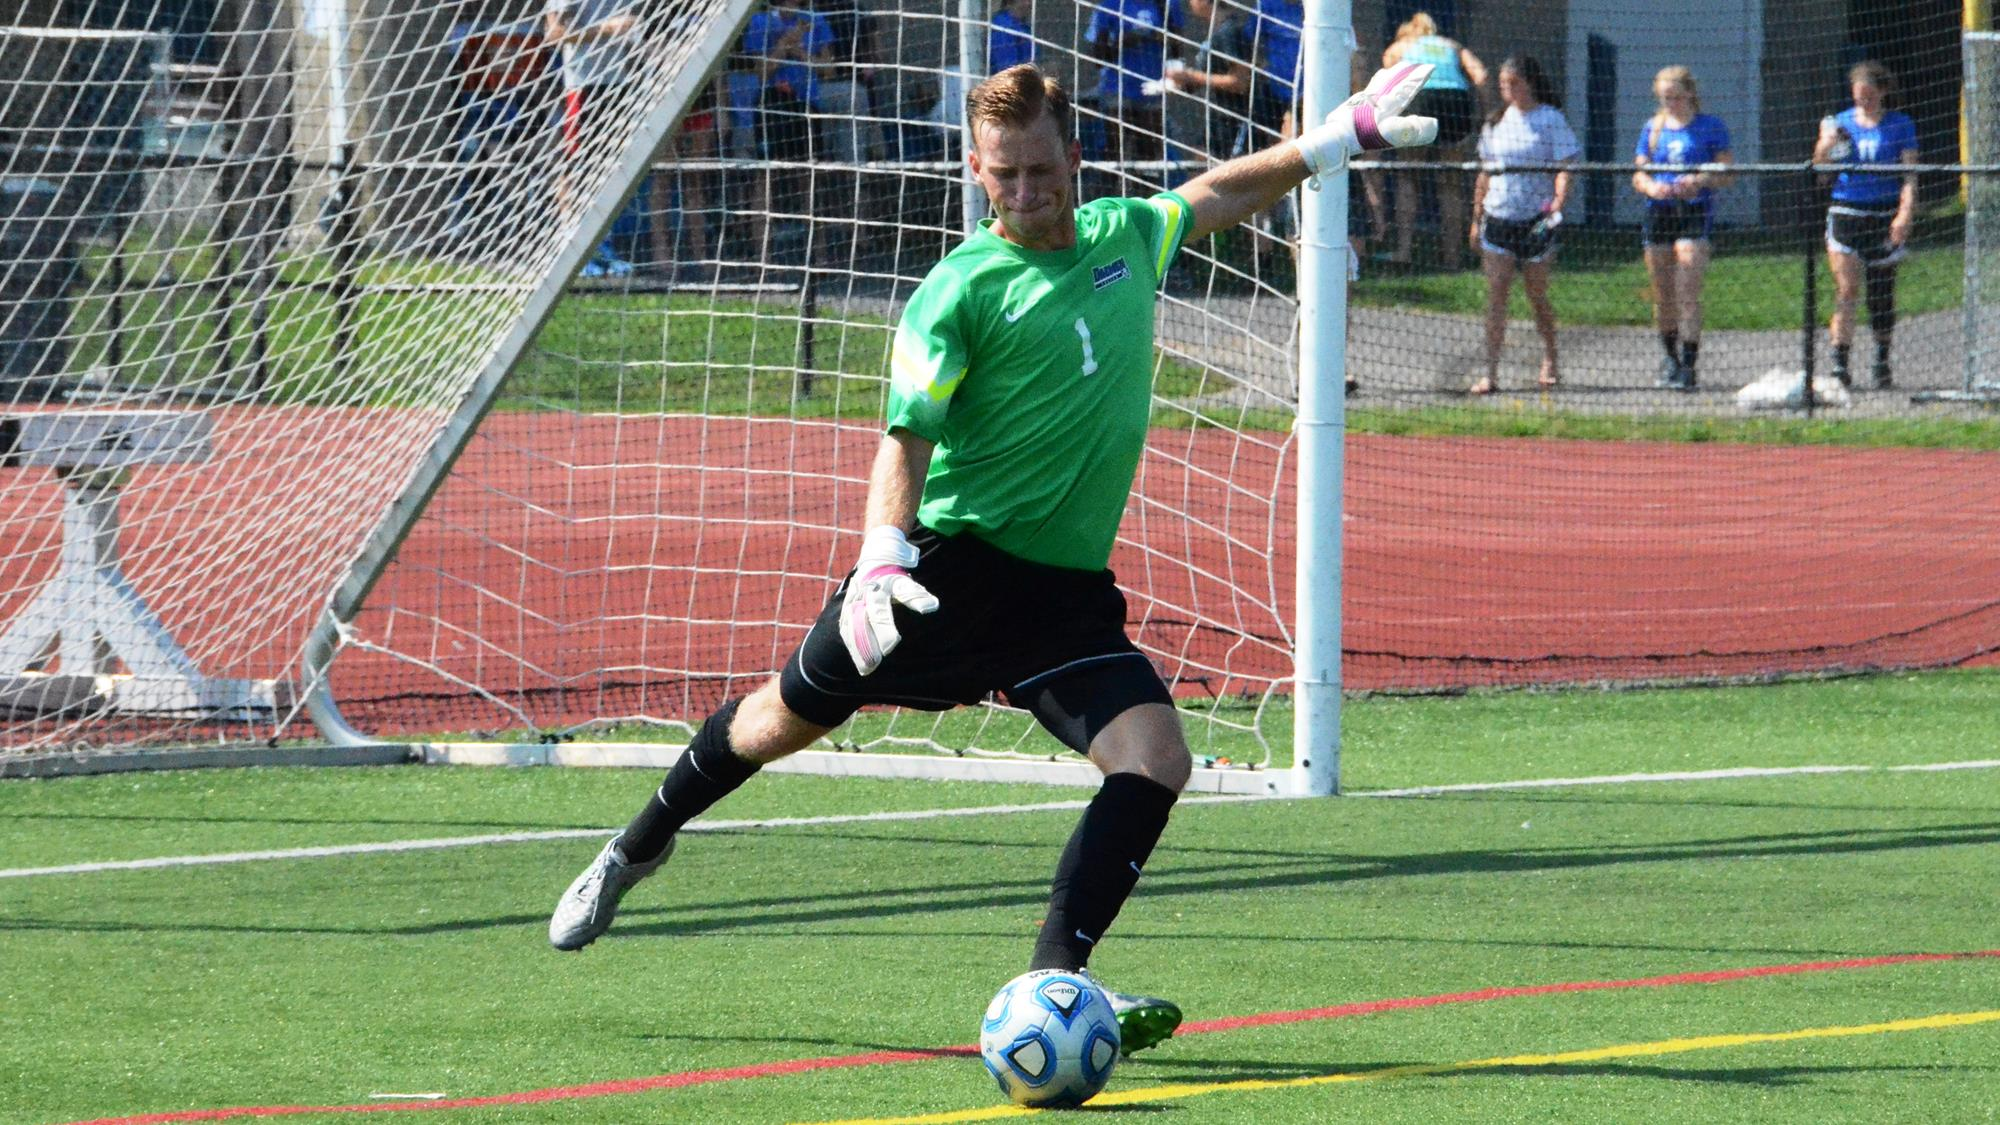 Grand Island native Justin Figler will compete for time in goal for FC Buffalo. (Daemen Athletics)